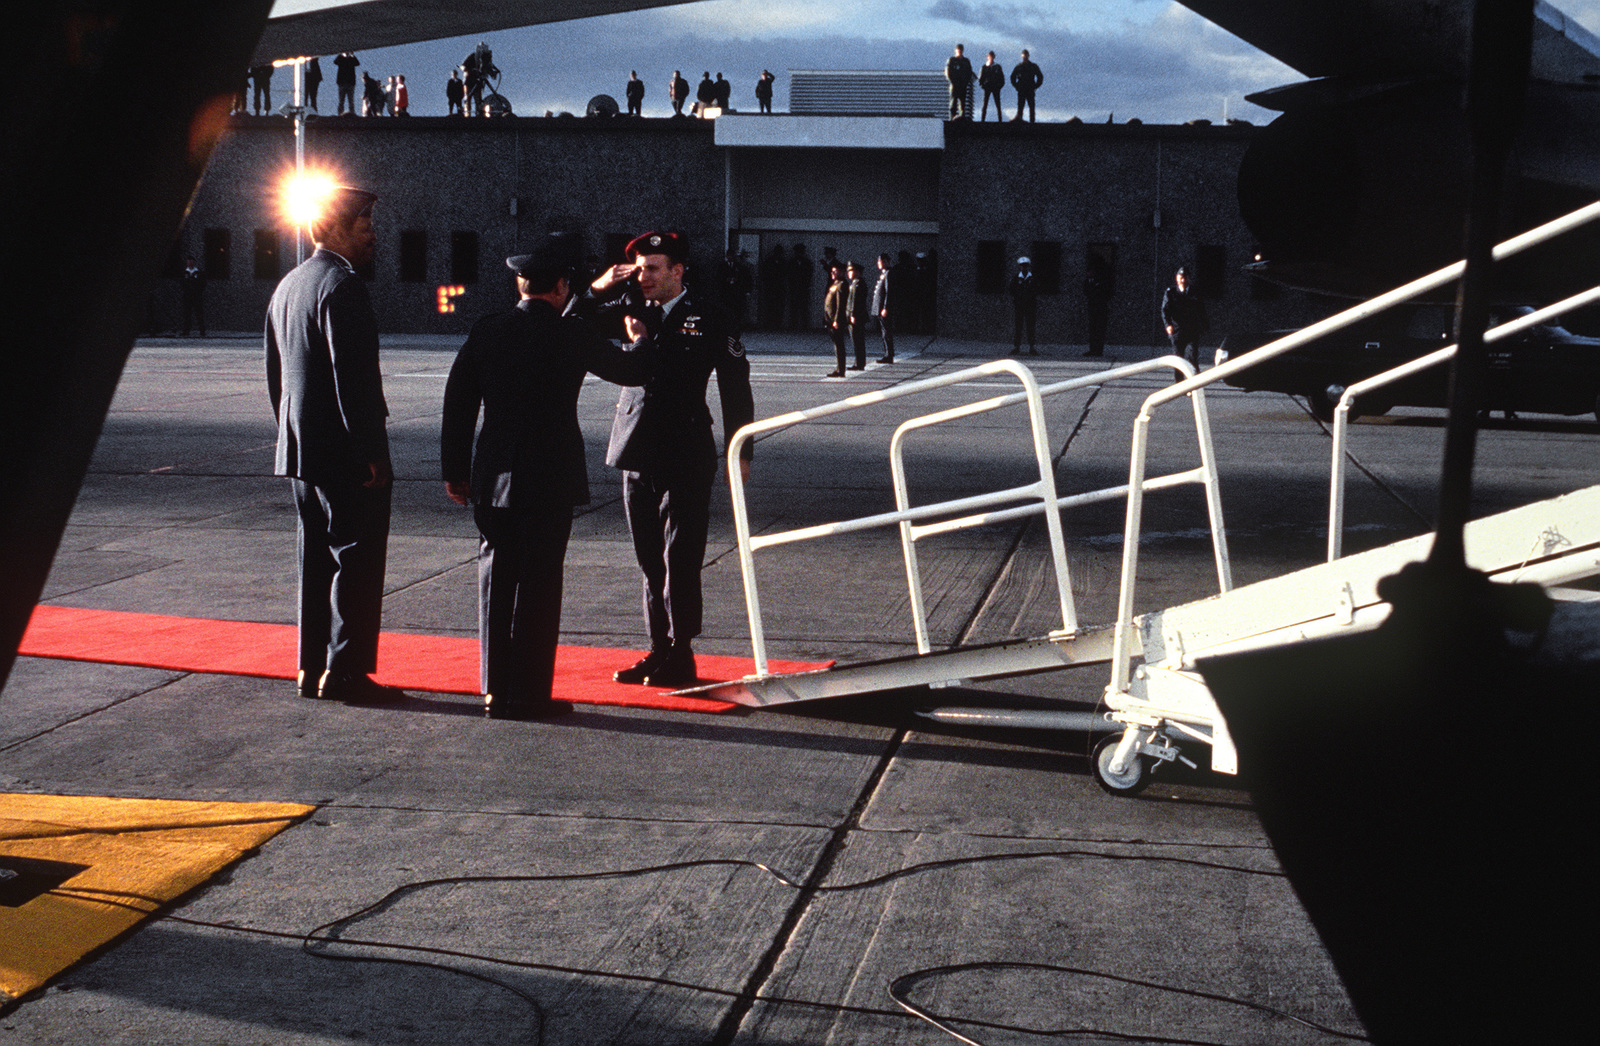 """Released Prisoner of War, U.S. Air Force TSGT Arthur Neil Black, (Captured 20 Sep 65)) salutes MGEN John Gonge, 22nd Air Force Commander and MGEN Daniel """"Chappie"""" James upon his arrival at Travis Air Force Base. TSGT Black was in the second group released by the North Vietnamese on Feb 12, 1973 in Hanoi"""